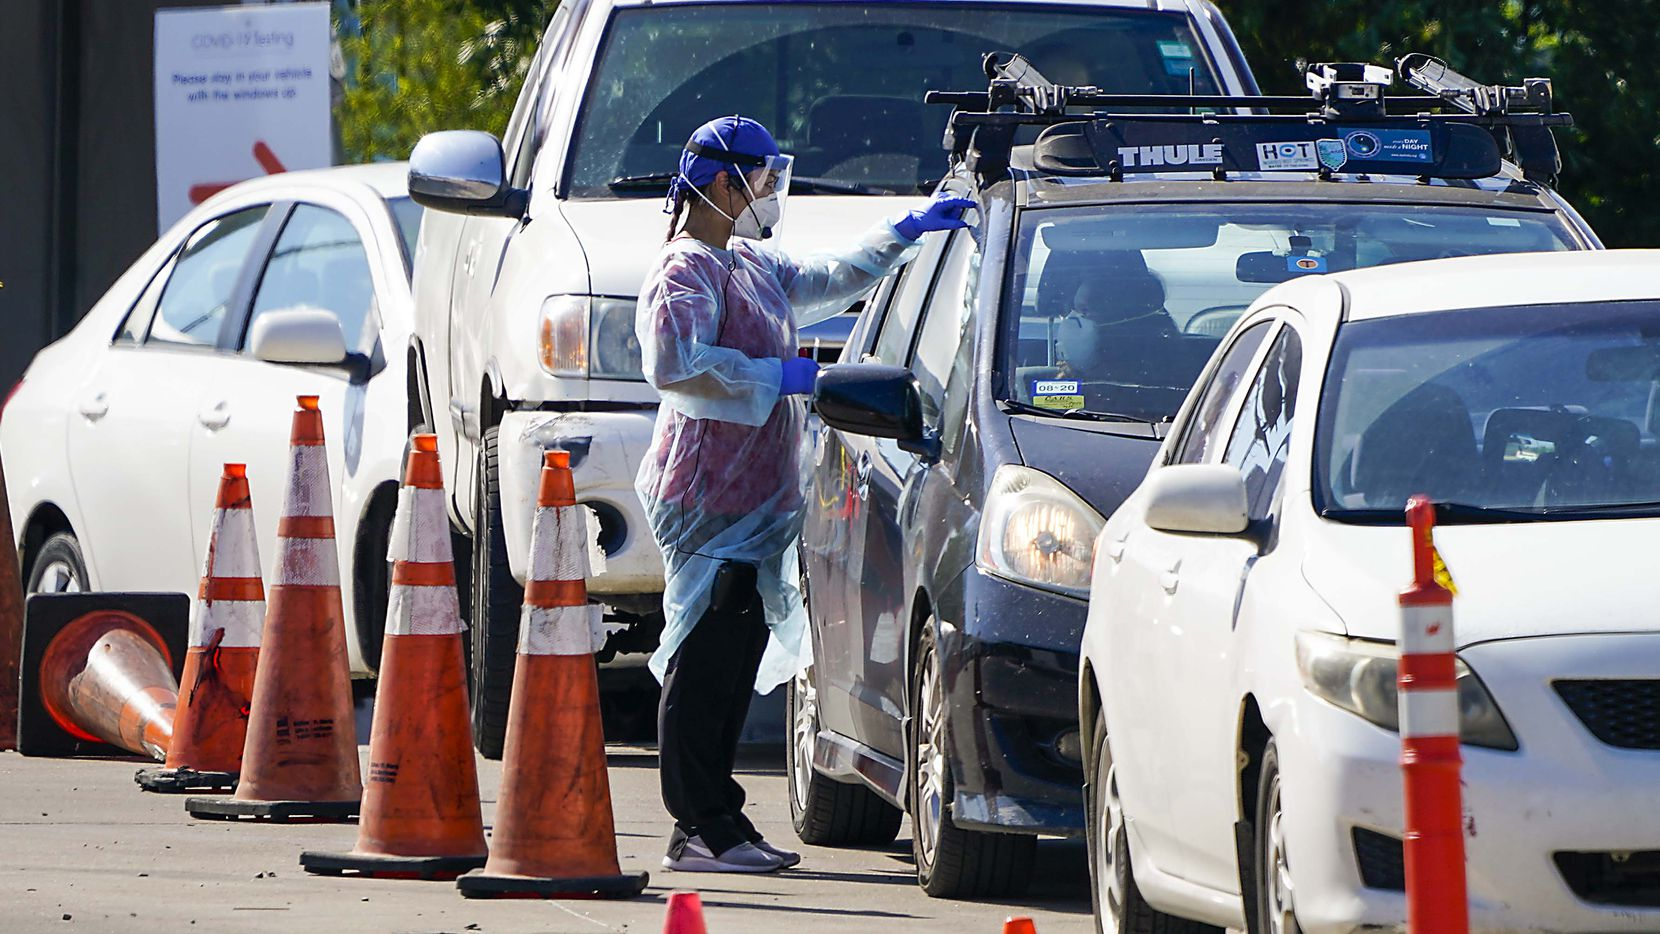 A health care worker interacts with motorists at a drive through COVID-19 testing facility at CitySquare on Wednesday, June 17, 2020, in Dallas. The COVID-19 testing center in South Dallas is a partnership between the City of Dallas, Dallas County, CitySquare and Kroger Health. Dallas county reported 413 new cases of the coronavirus on Wednesday.